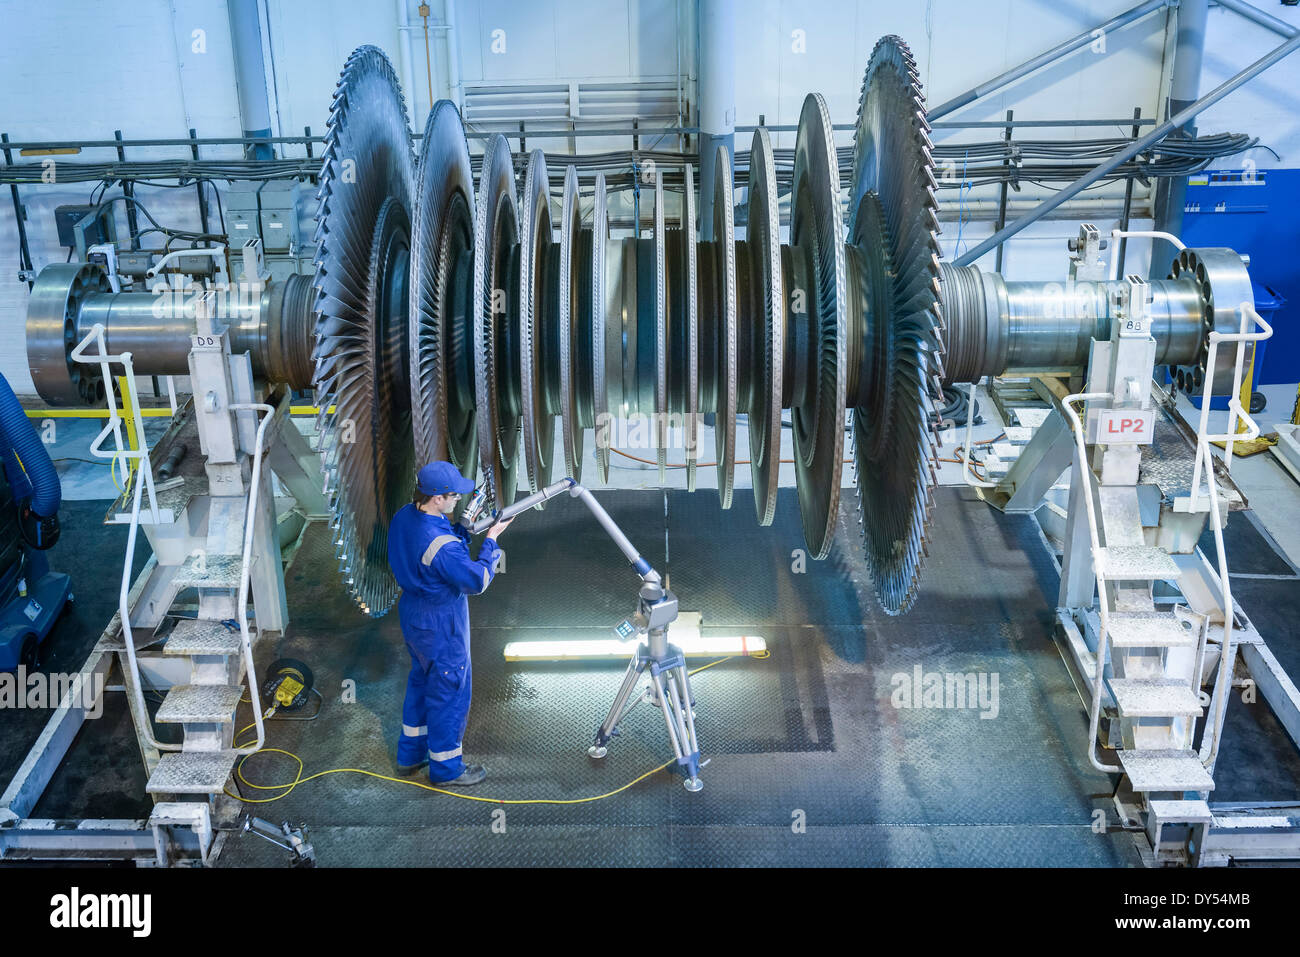 Engineer measuring low pressure steam turbine parts in repair works - Stock Image